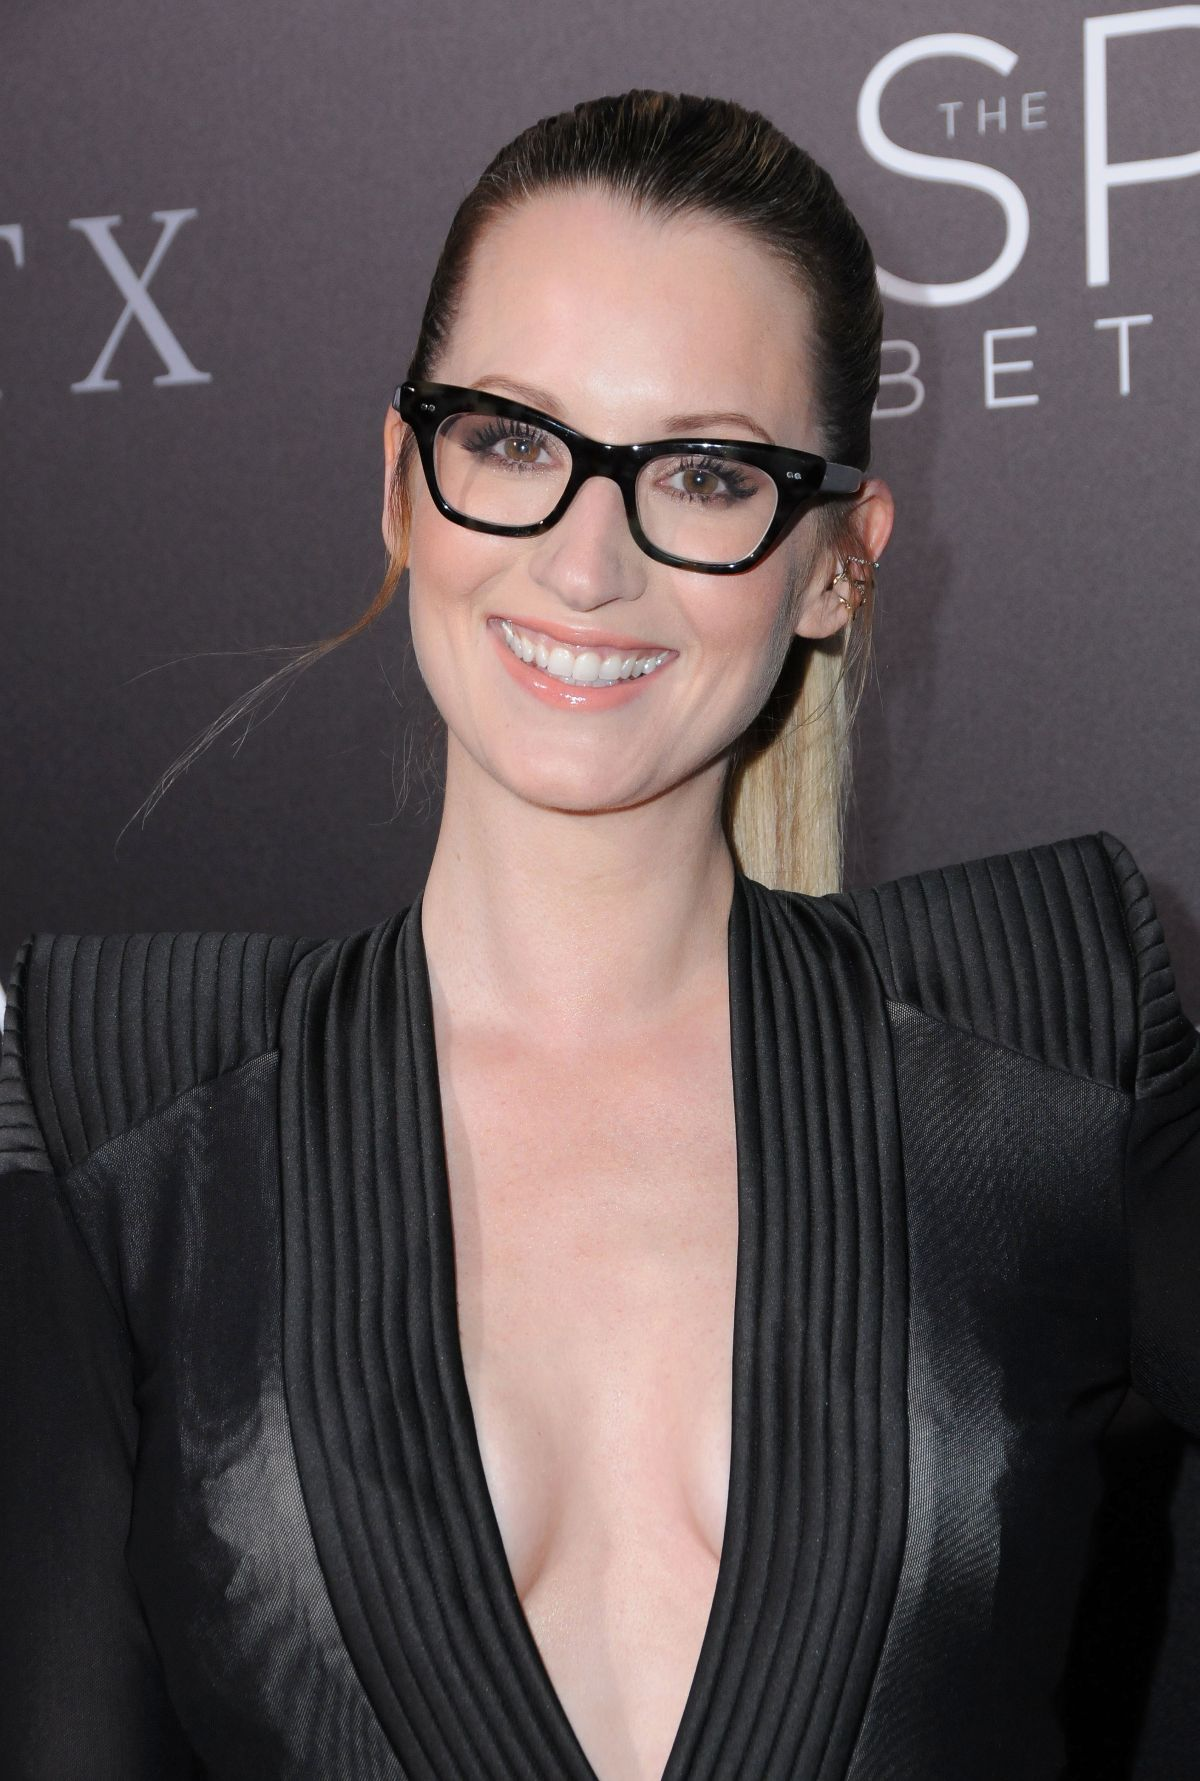 Ingrid Michaelson At The Space Between Us Premiere In Los Angeles Celebzz Celebzz